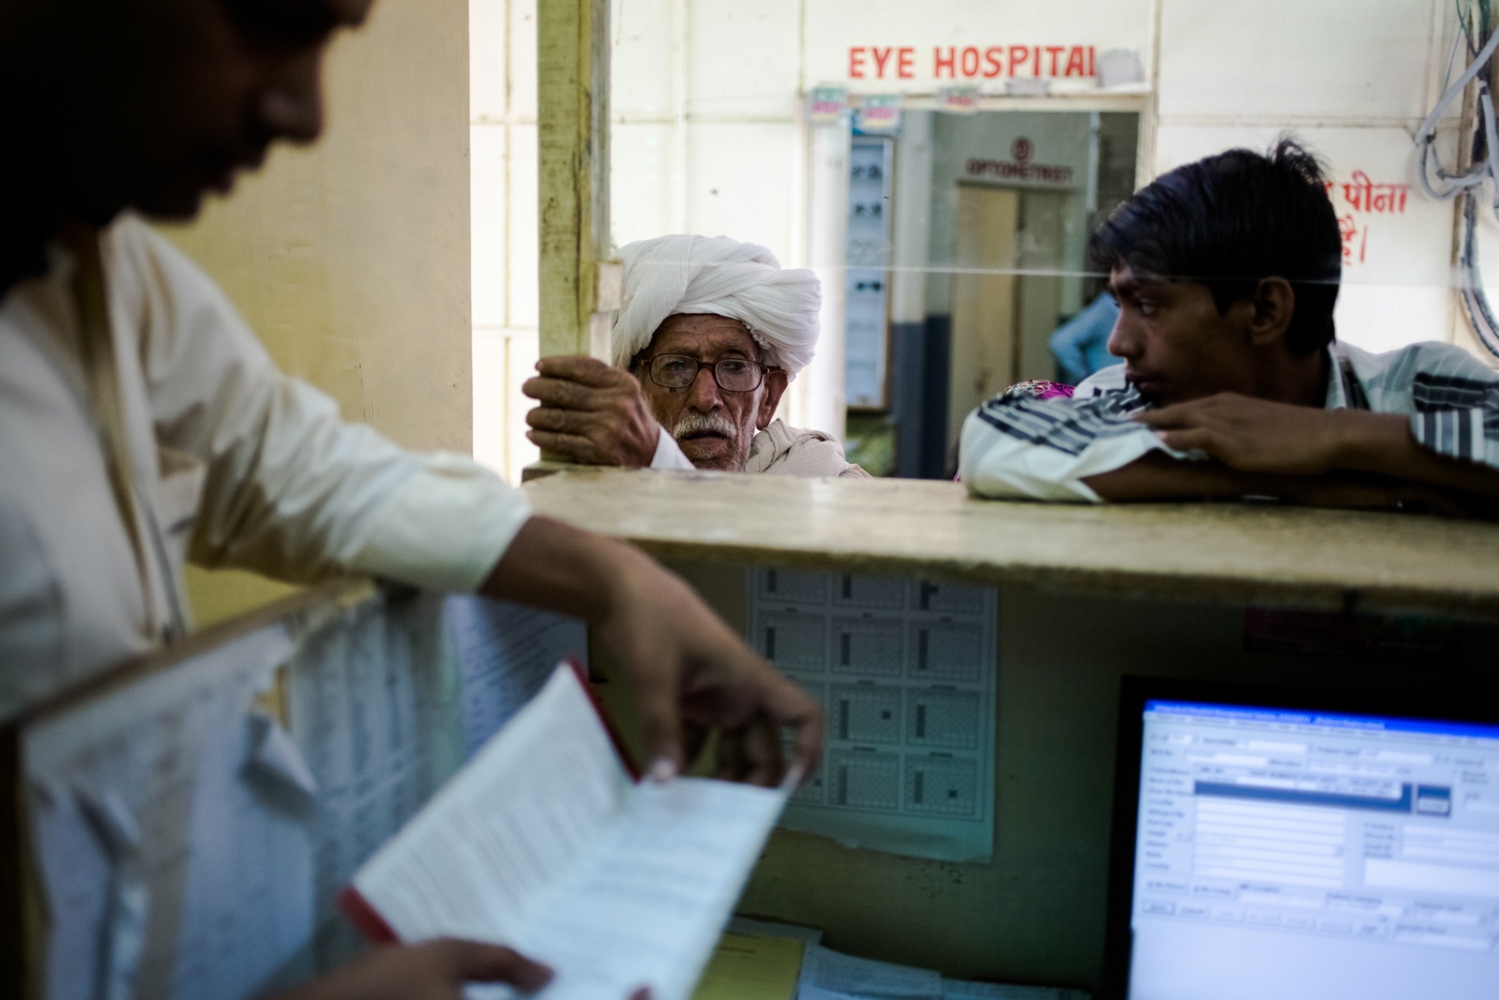 Indian patients wait in the reception area of the Dr Shroff Charity Eye Hospital in Alwar in the state of Rajasthan on August 14, 2014.